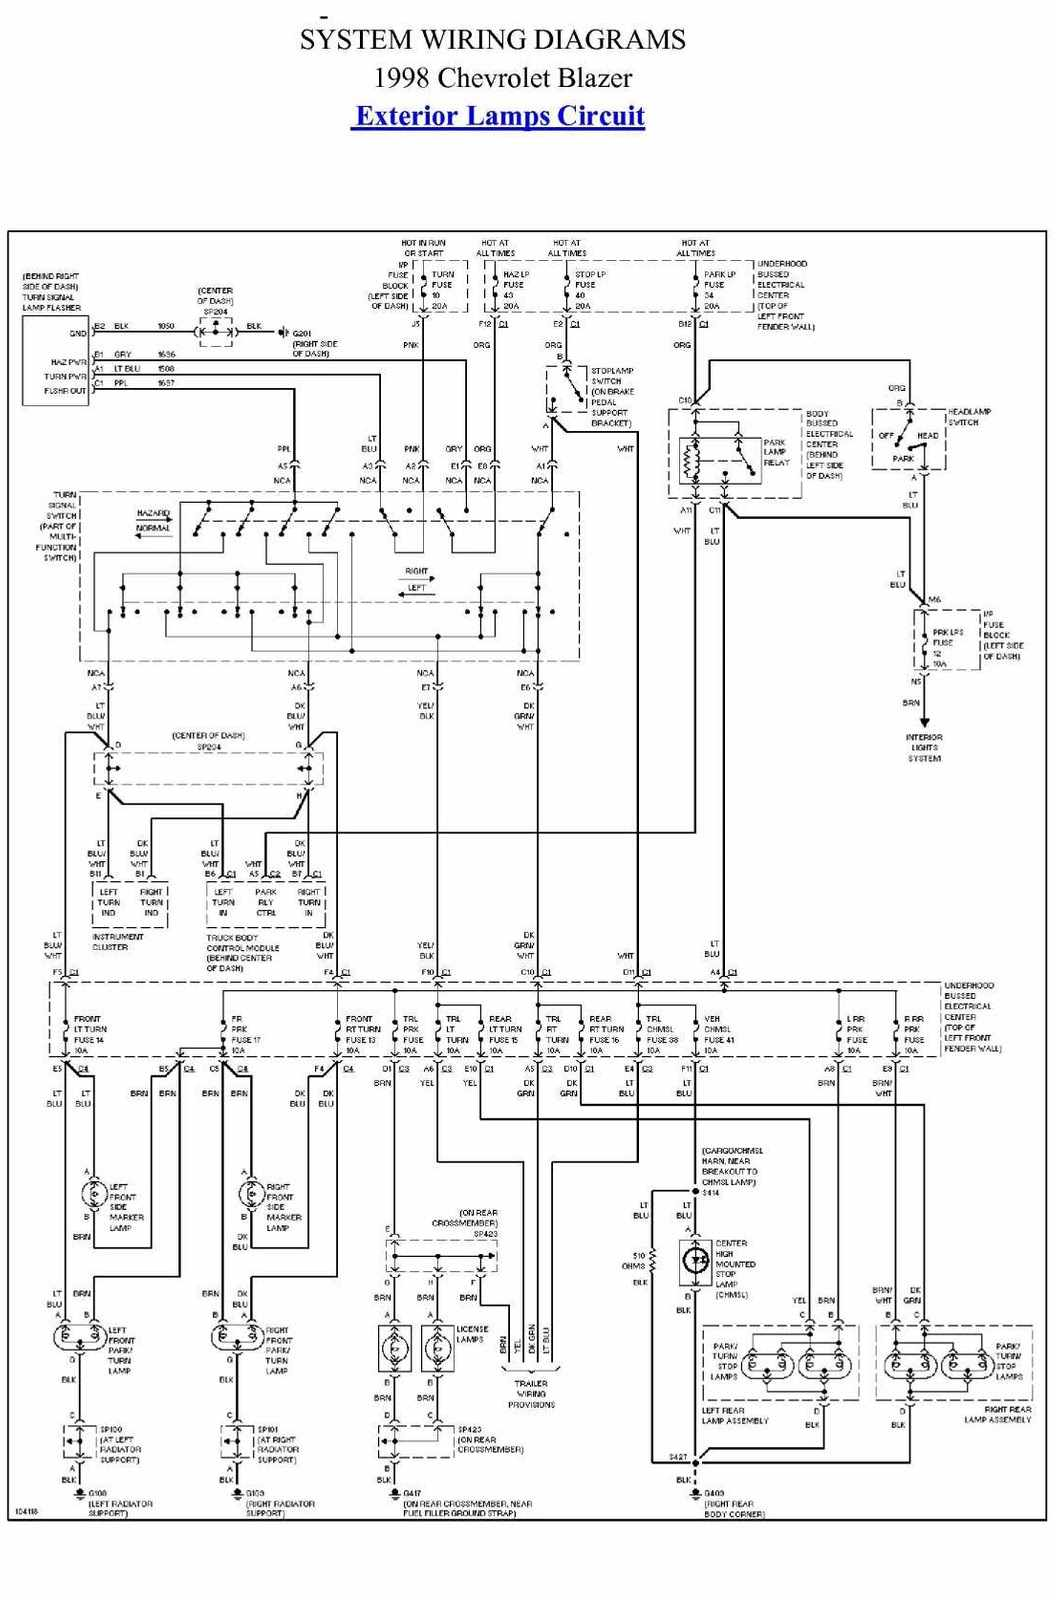 Wiring Diagram 98 Blazer - Motorcycle Electric Starter Wiring Diagram -  doorchime.ikikik.jeanjaures37.frWiring Diagram